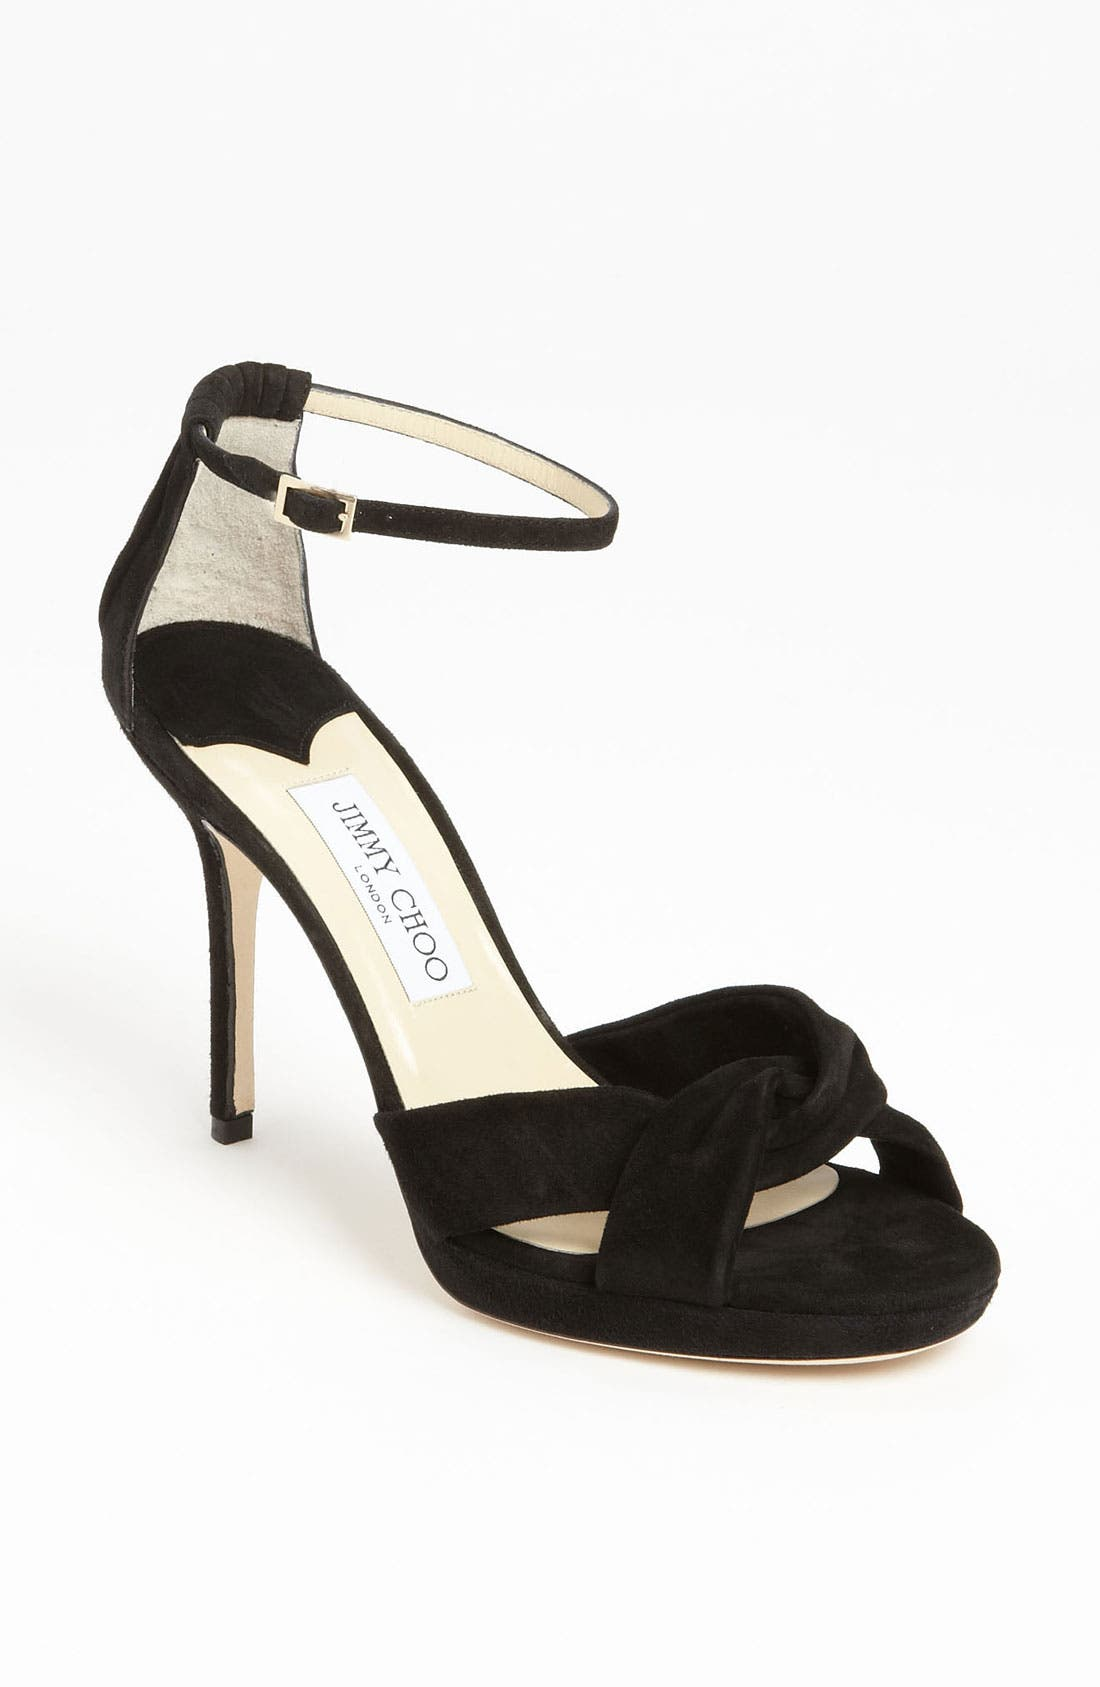 JIMMY CHOO, 'Marion' Sandal, Main thumbnail 1, color, 001